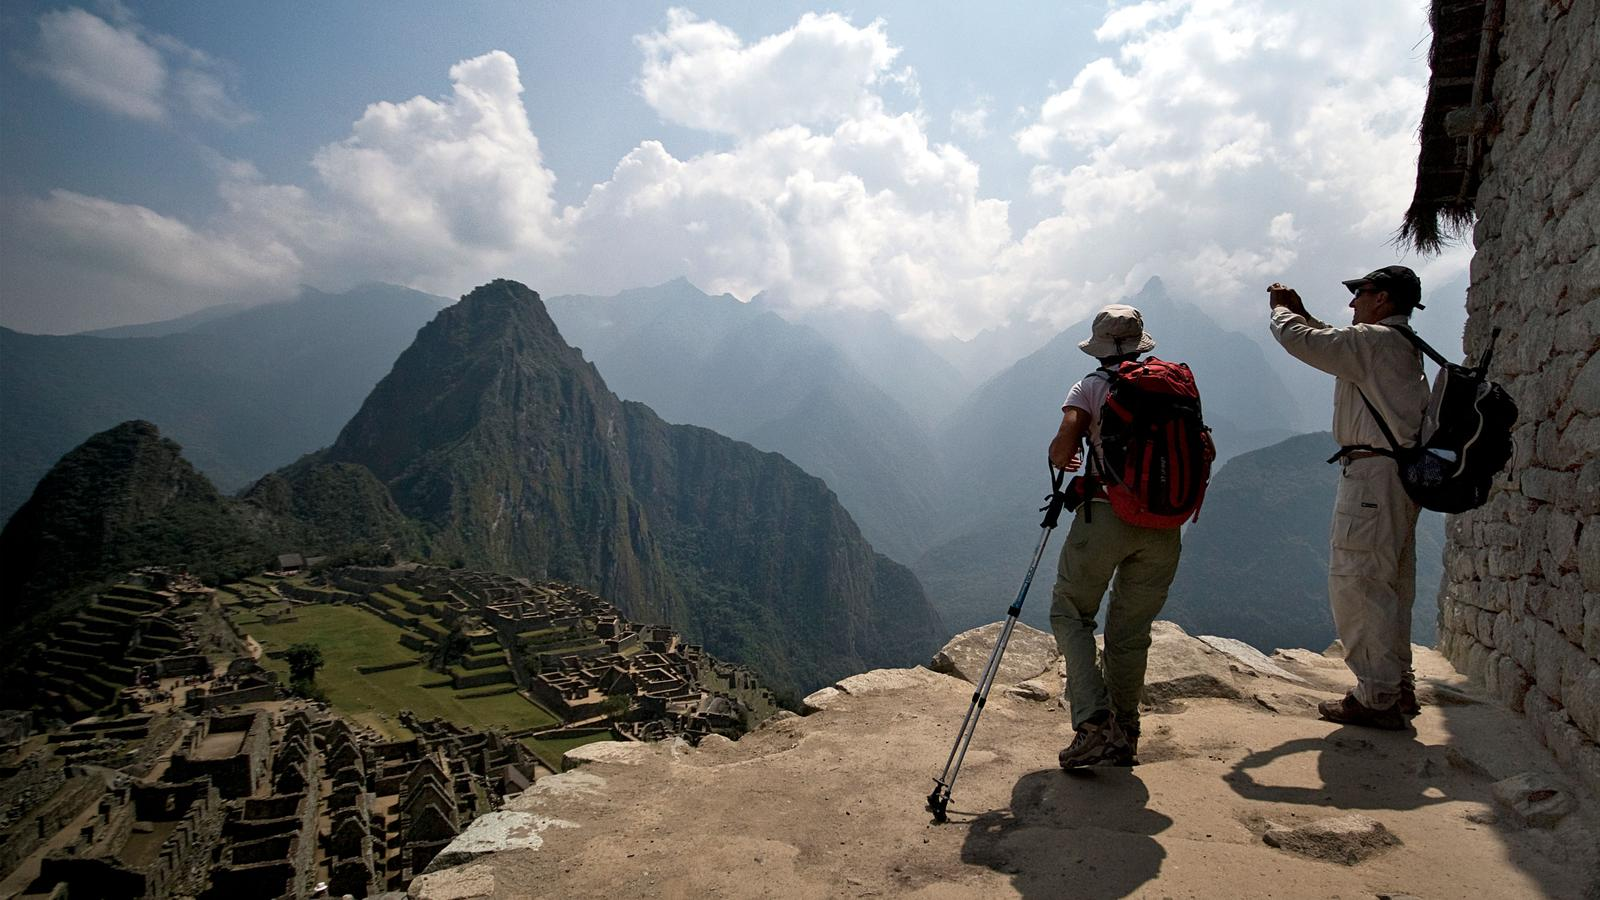 Machu Picchu And The Amazon In Peru  South America